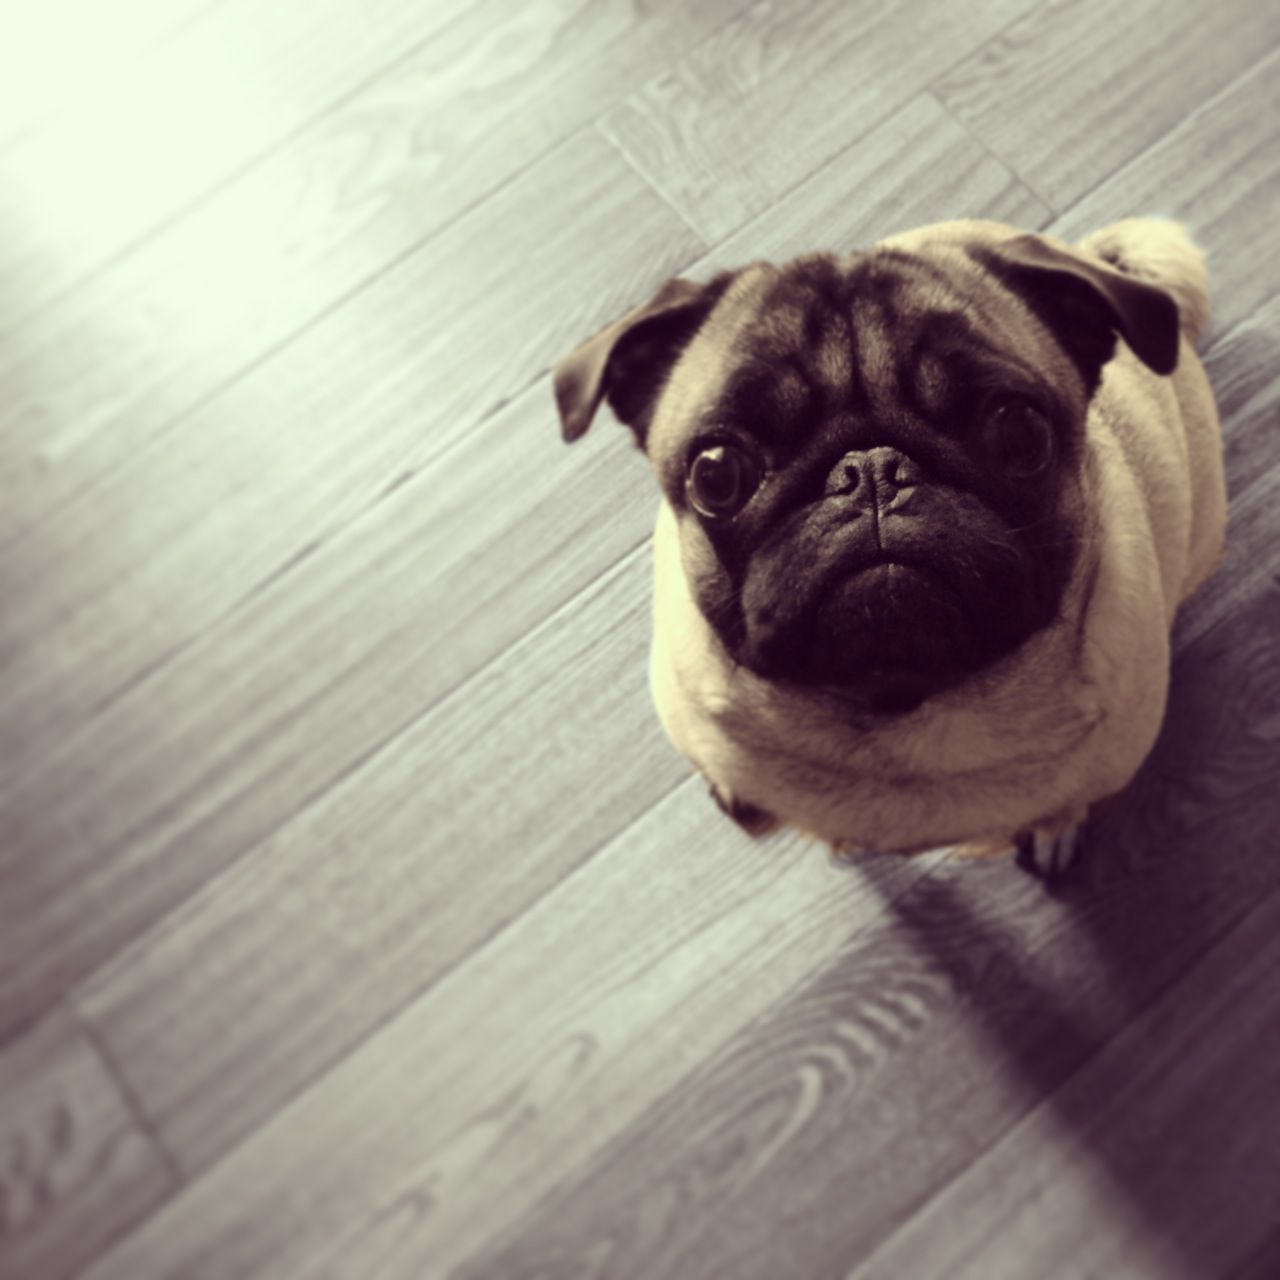 My Pug Gadget Turns 2 Years Old Today She Was The Runt Of The